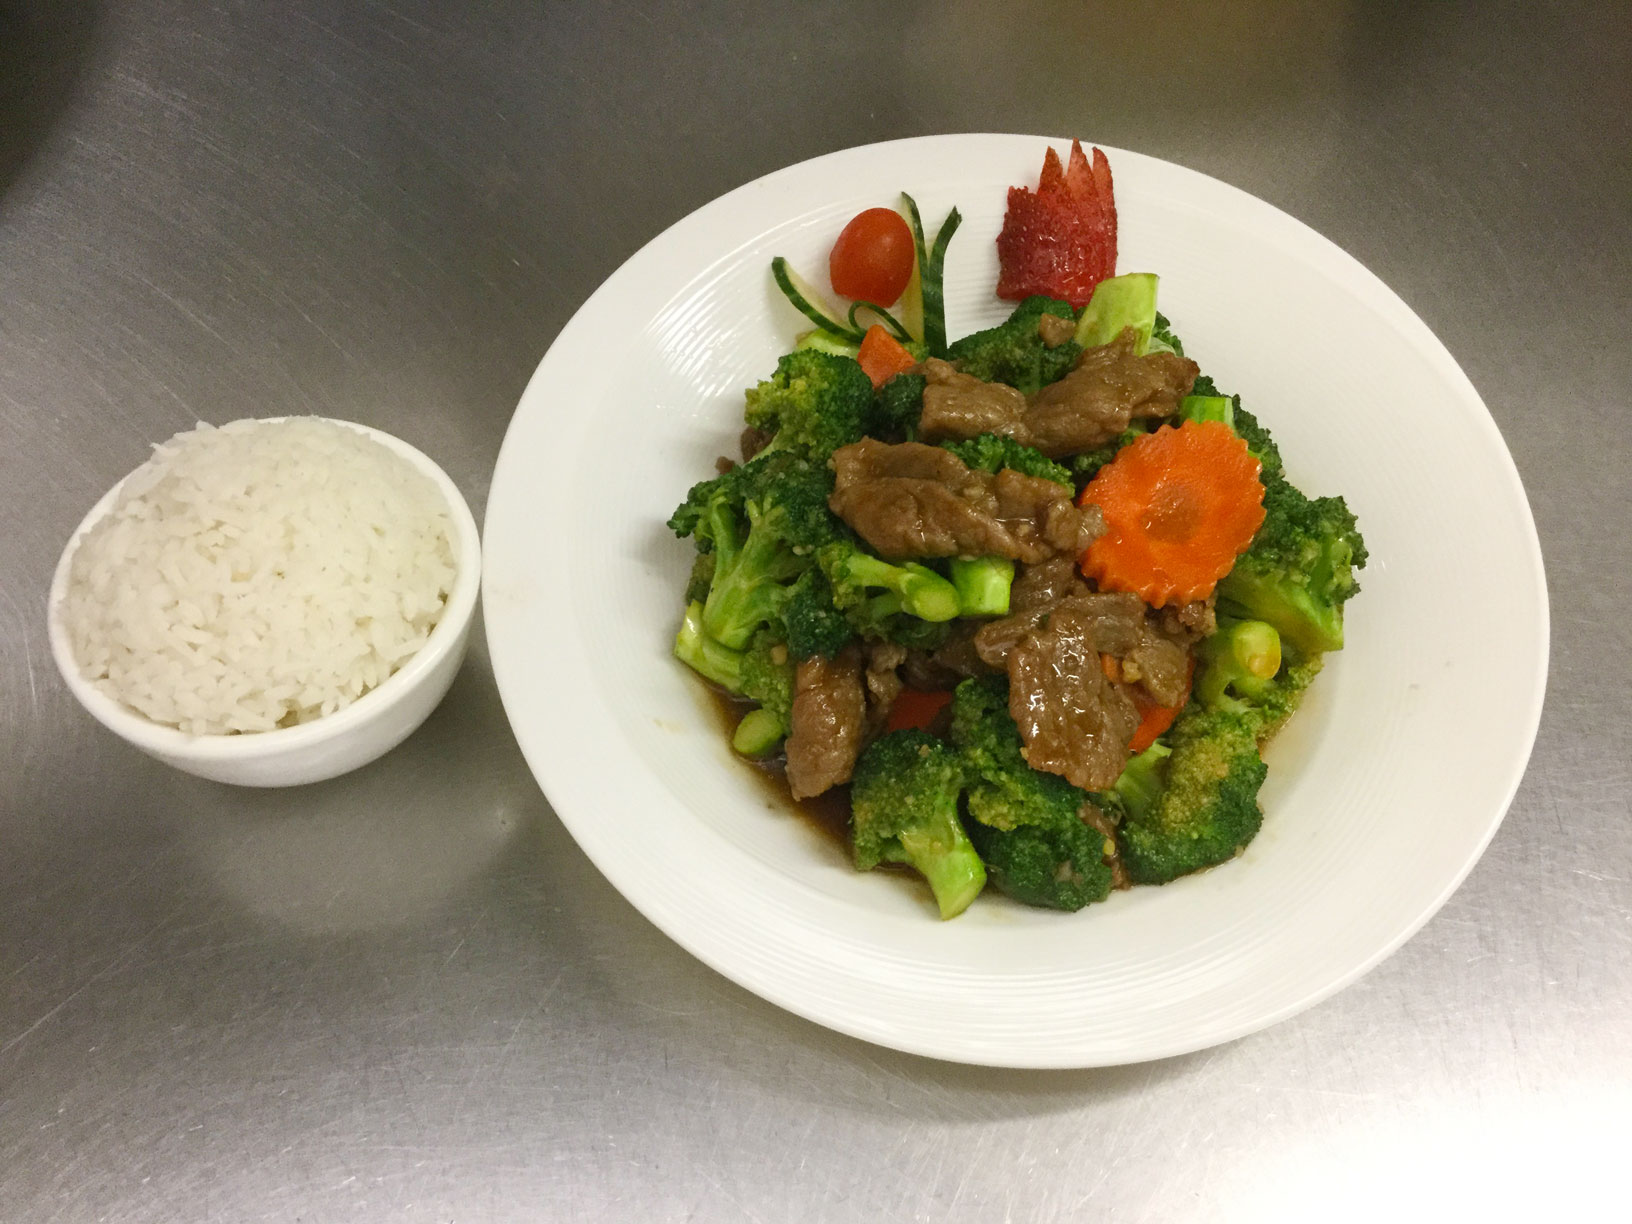 beef with broccoli and carrots